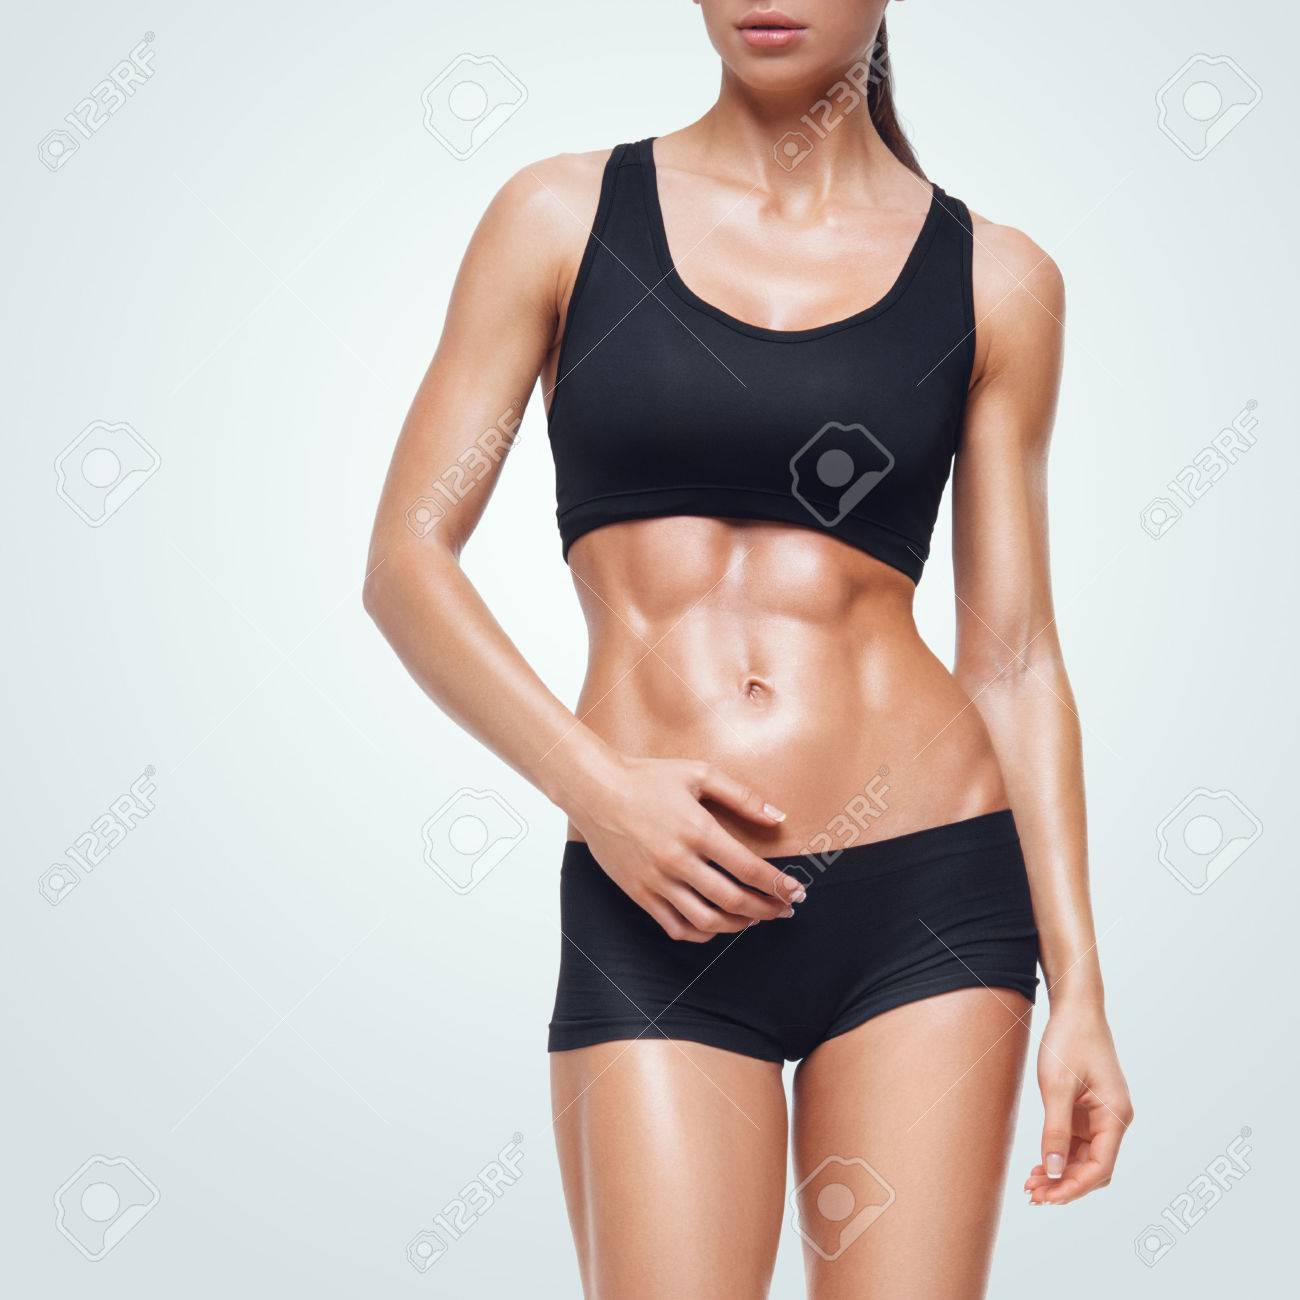 Fitness sporty woman walking. Strong abs showing. Standard-Bild - 41422058